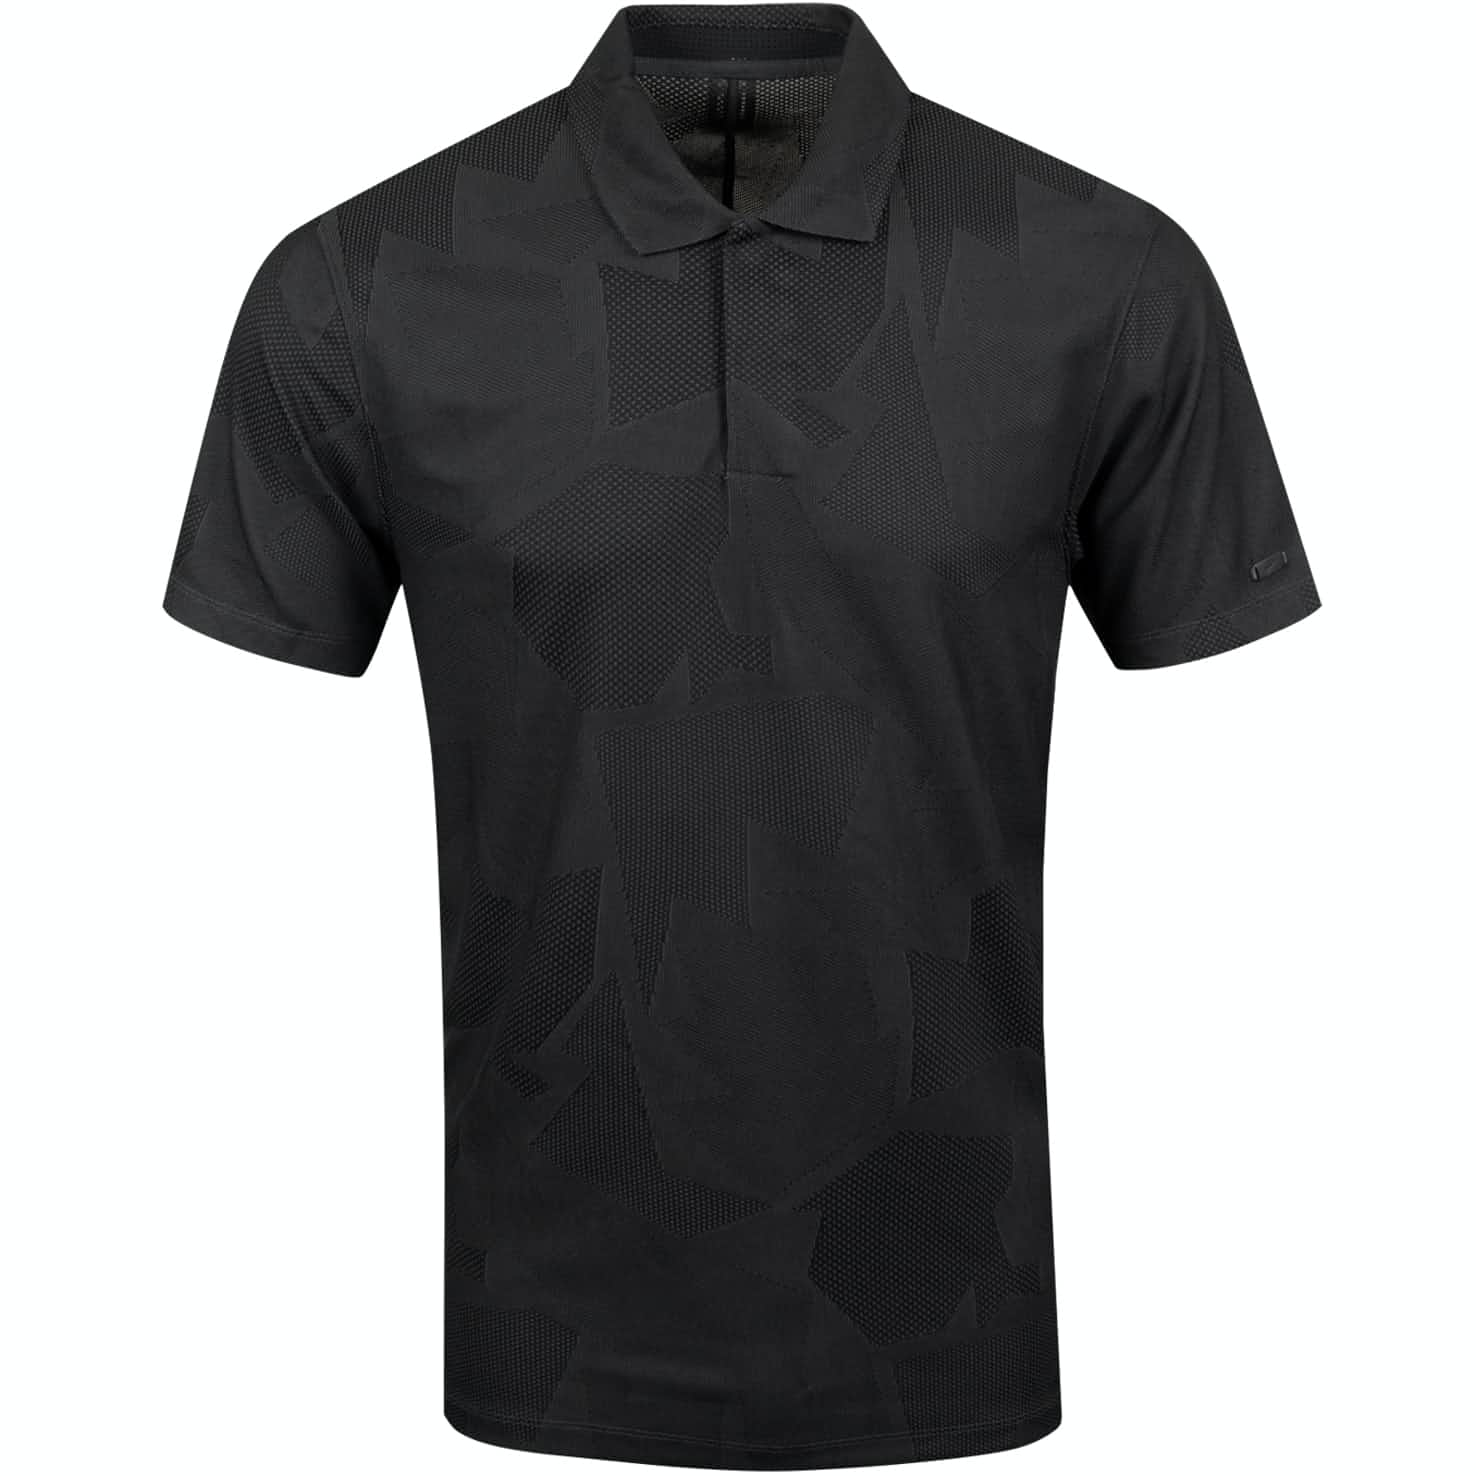 TW Dry Camo Jacquard Polo Dark Smoke Grey  - SS20